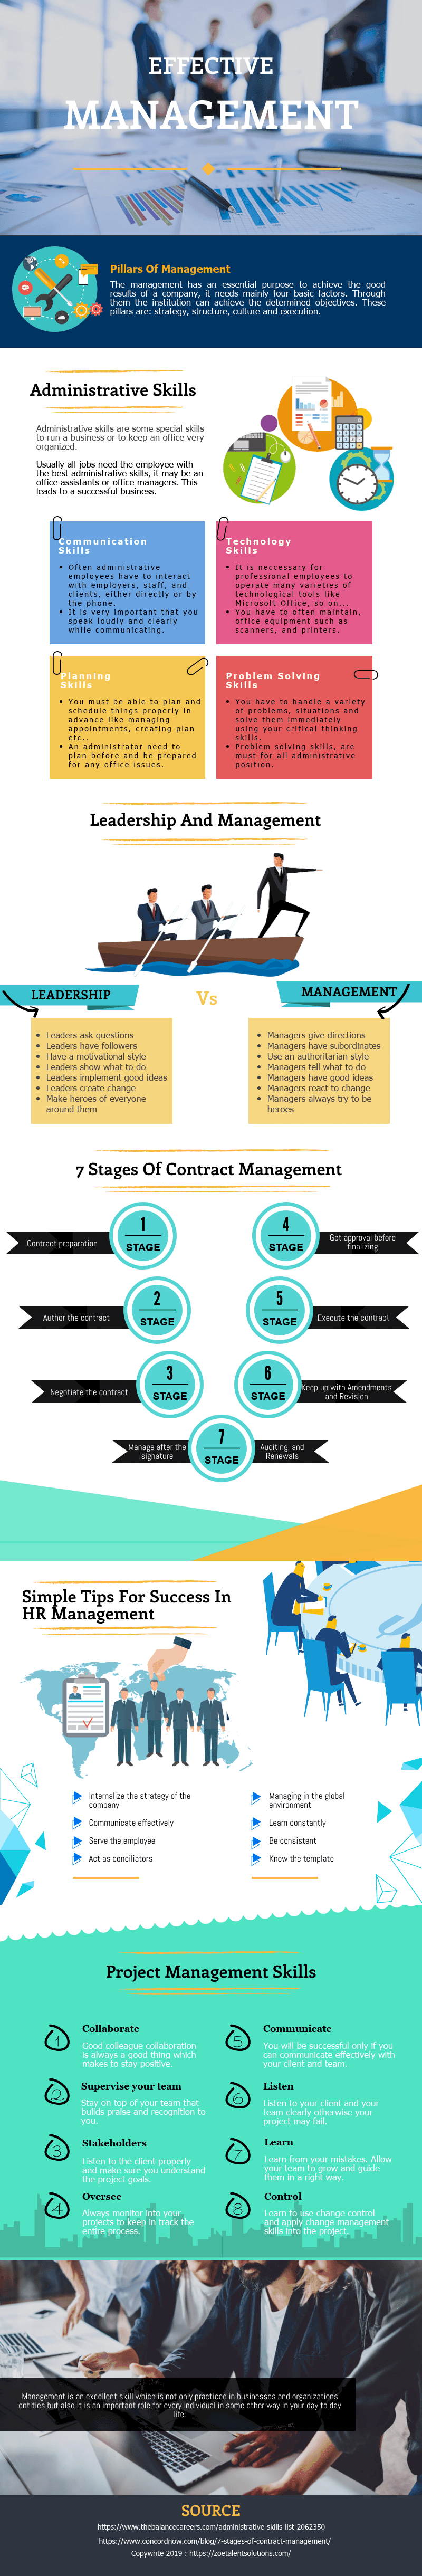 Business management infographic